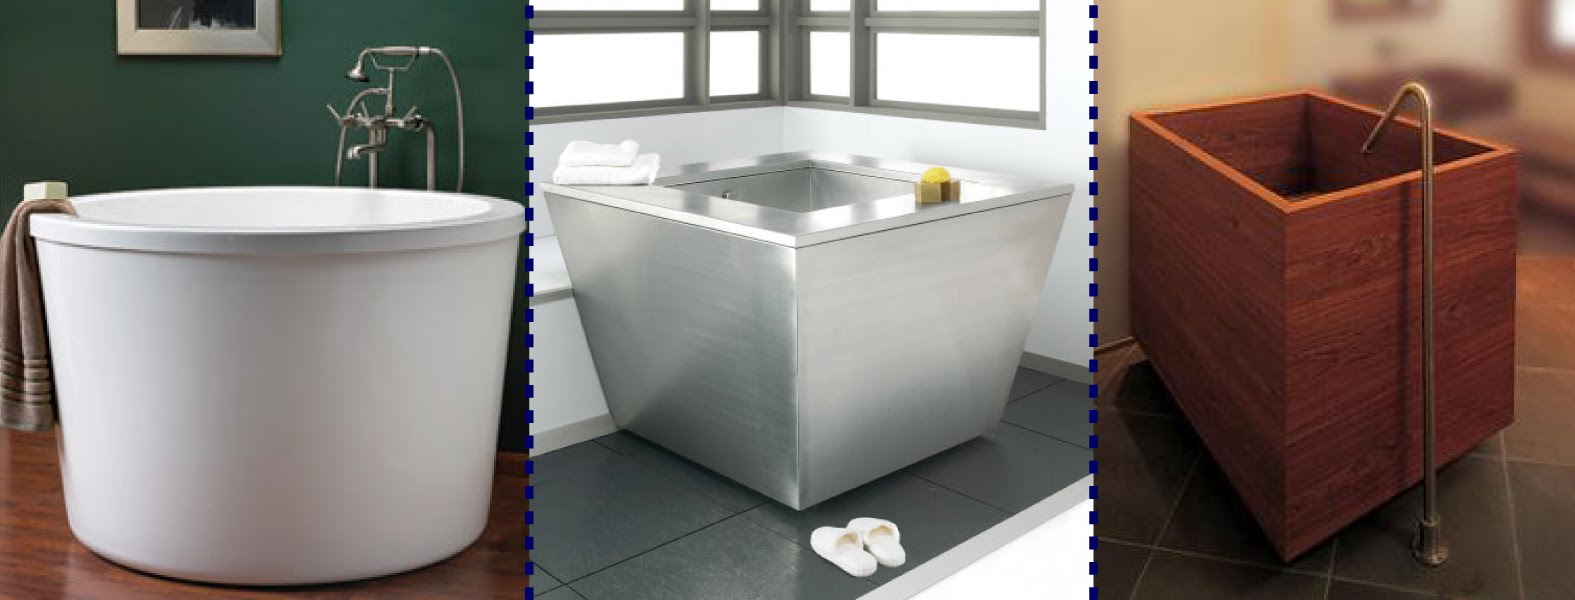 ofuro soaking tub